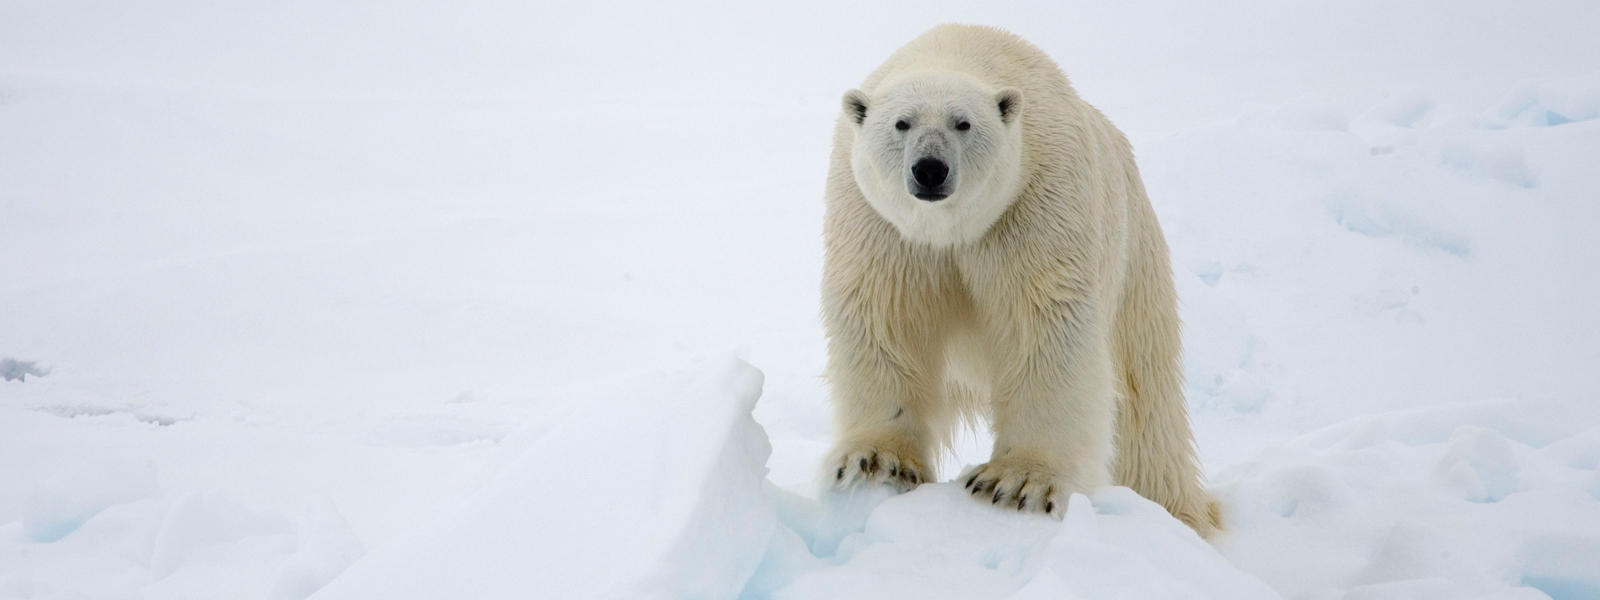 How Do Polar Bears Get Food And Water